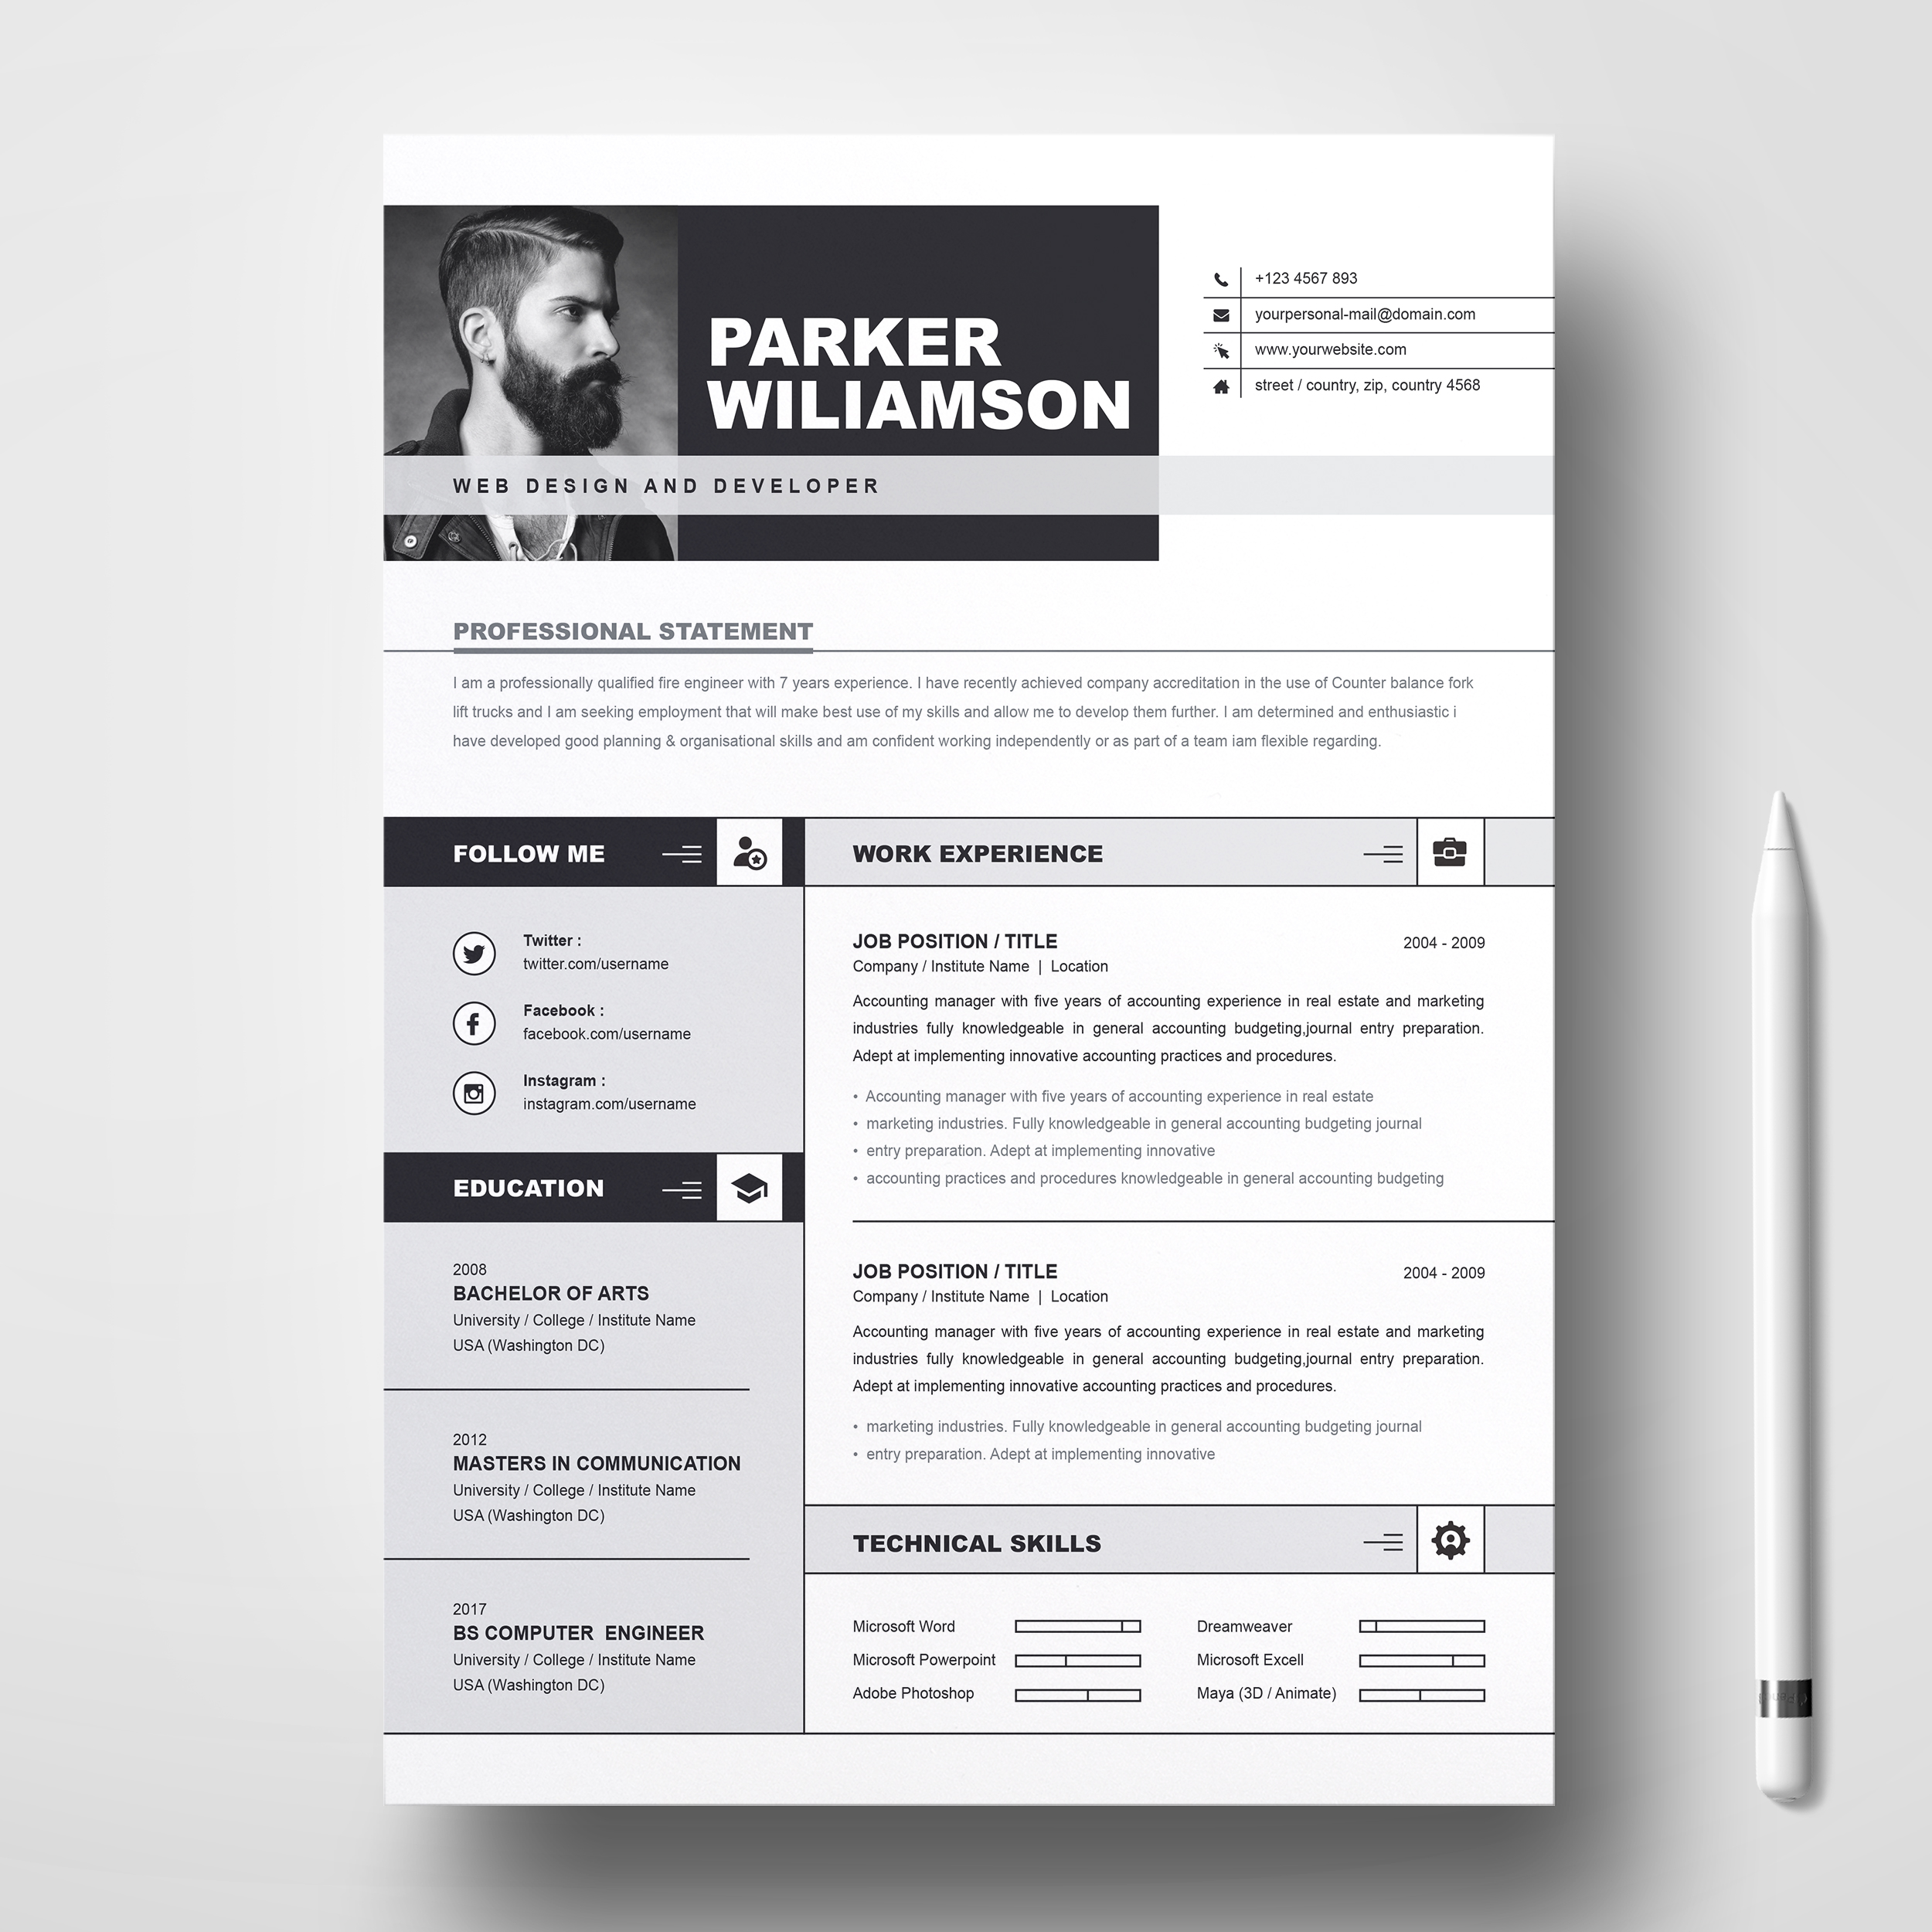 Web Developer Resume 2021